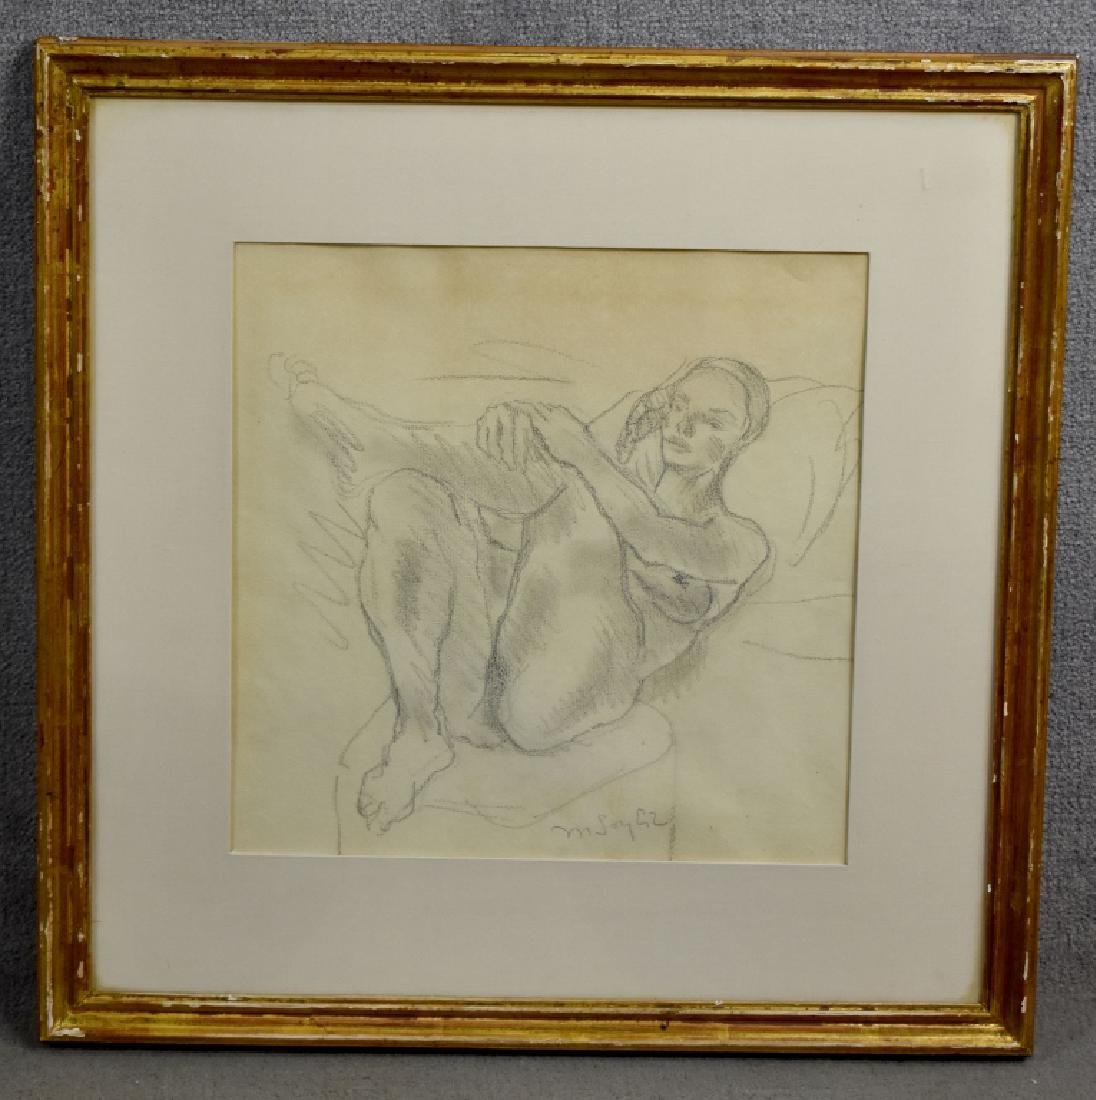 Moses Soyer Crayon Sketch of Reclining Nude